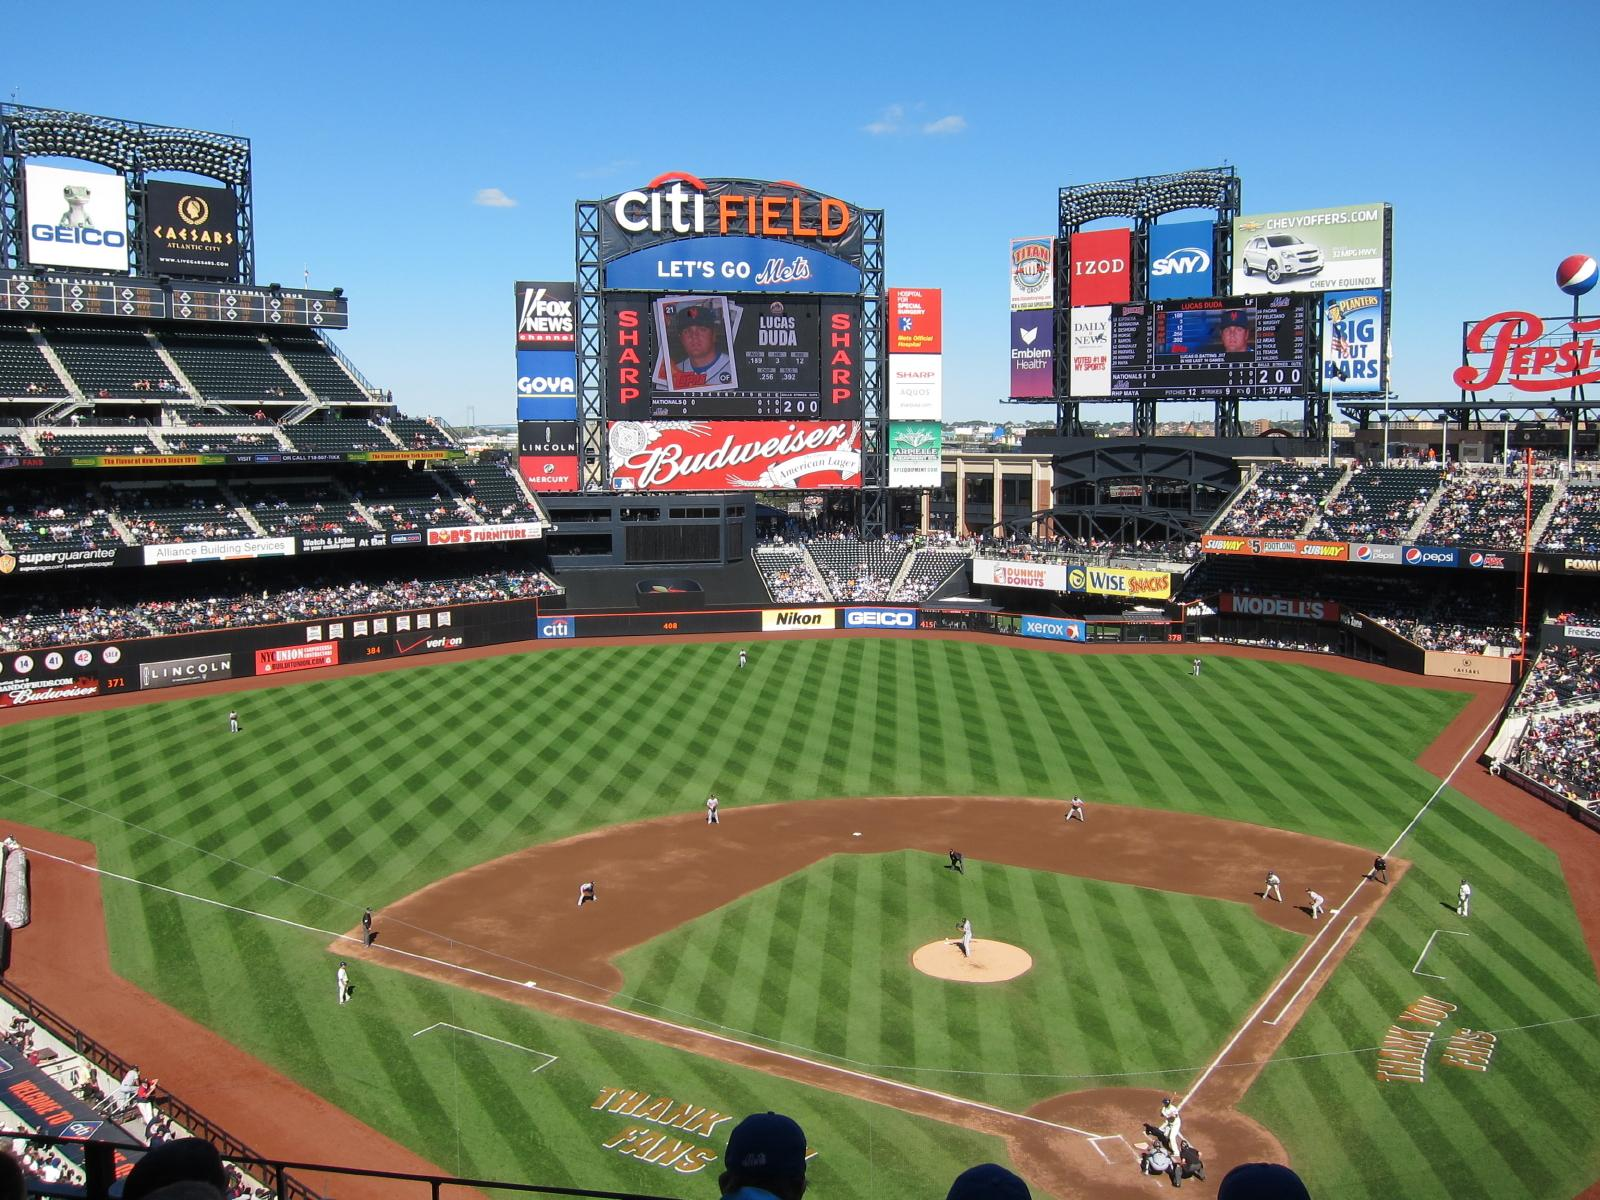 Citi field section 417 row 4 seat 7 new york mets shared by citi field section 417 row 4 seat 7 new york mets shared by robardin altavistaventures Image collections